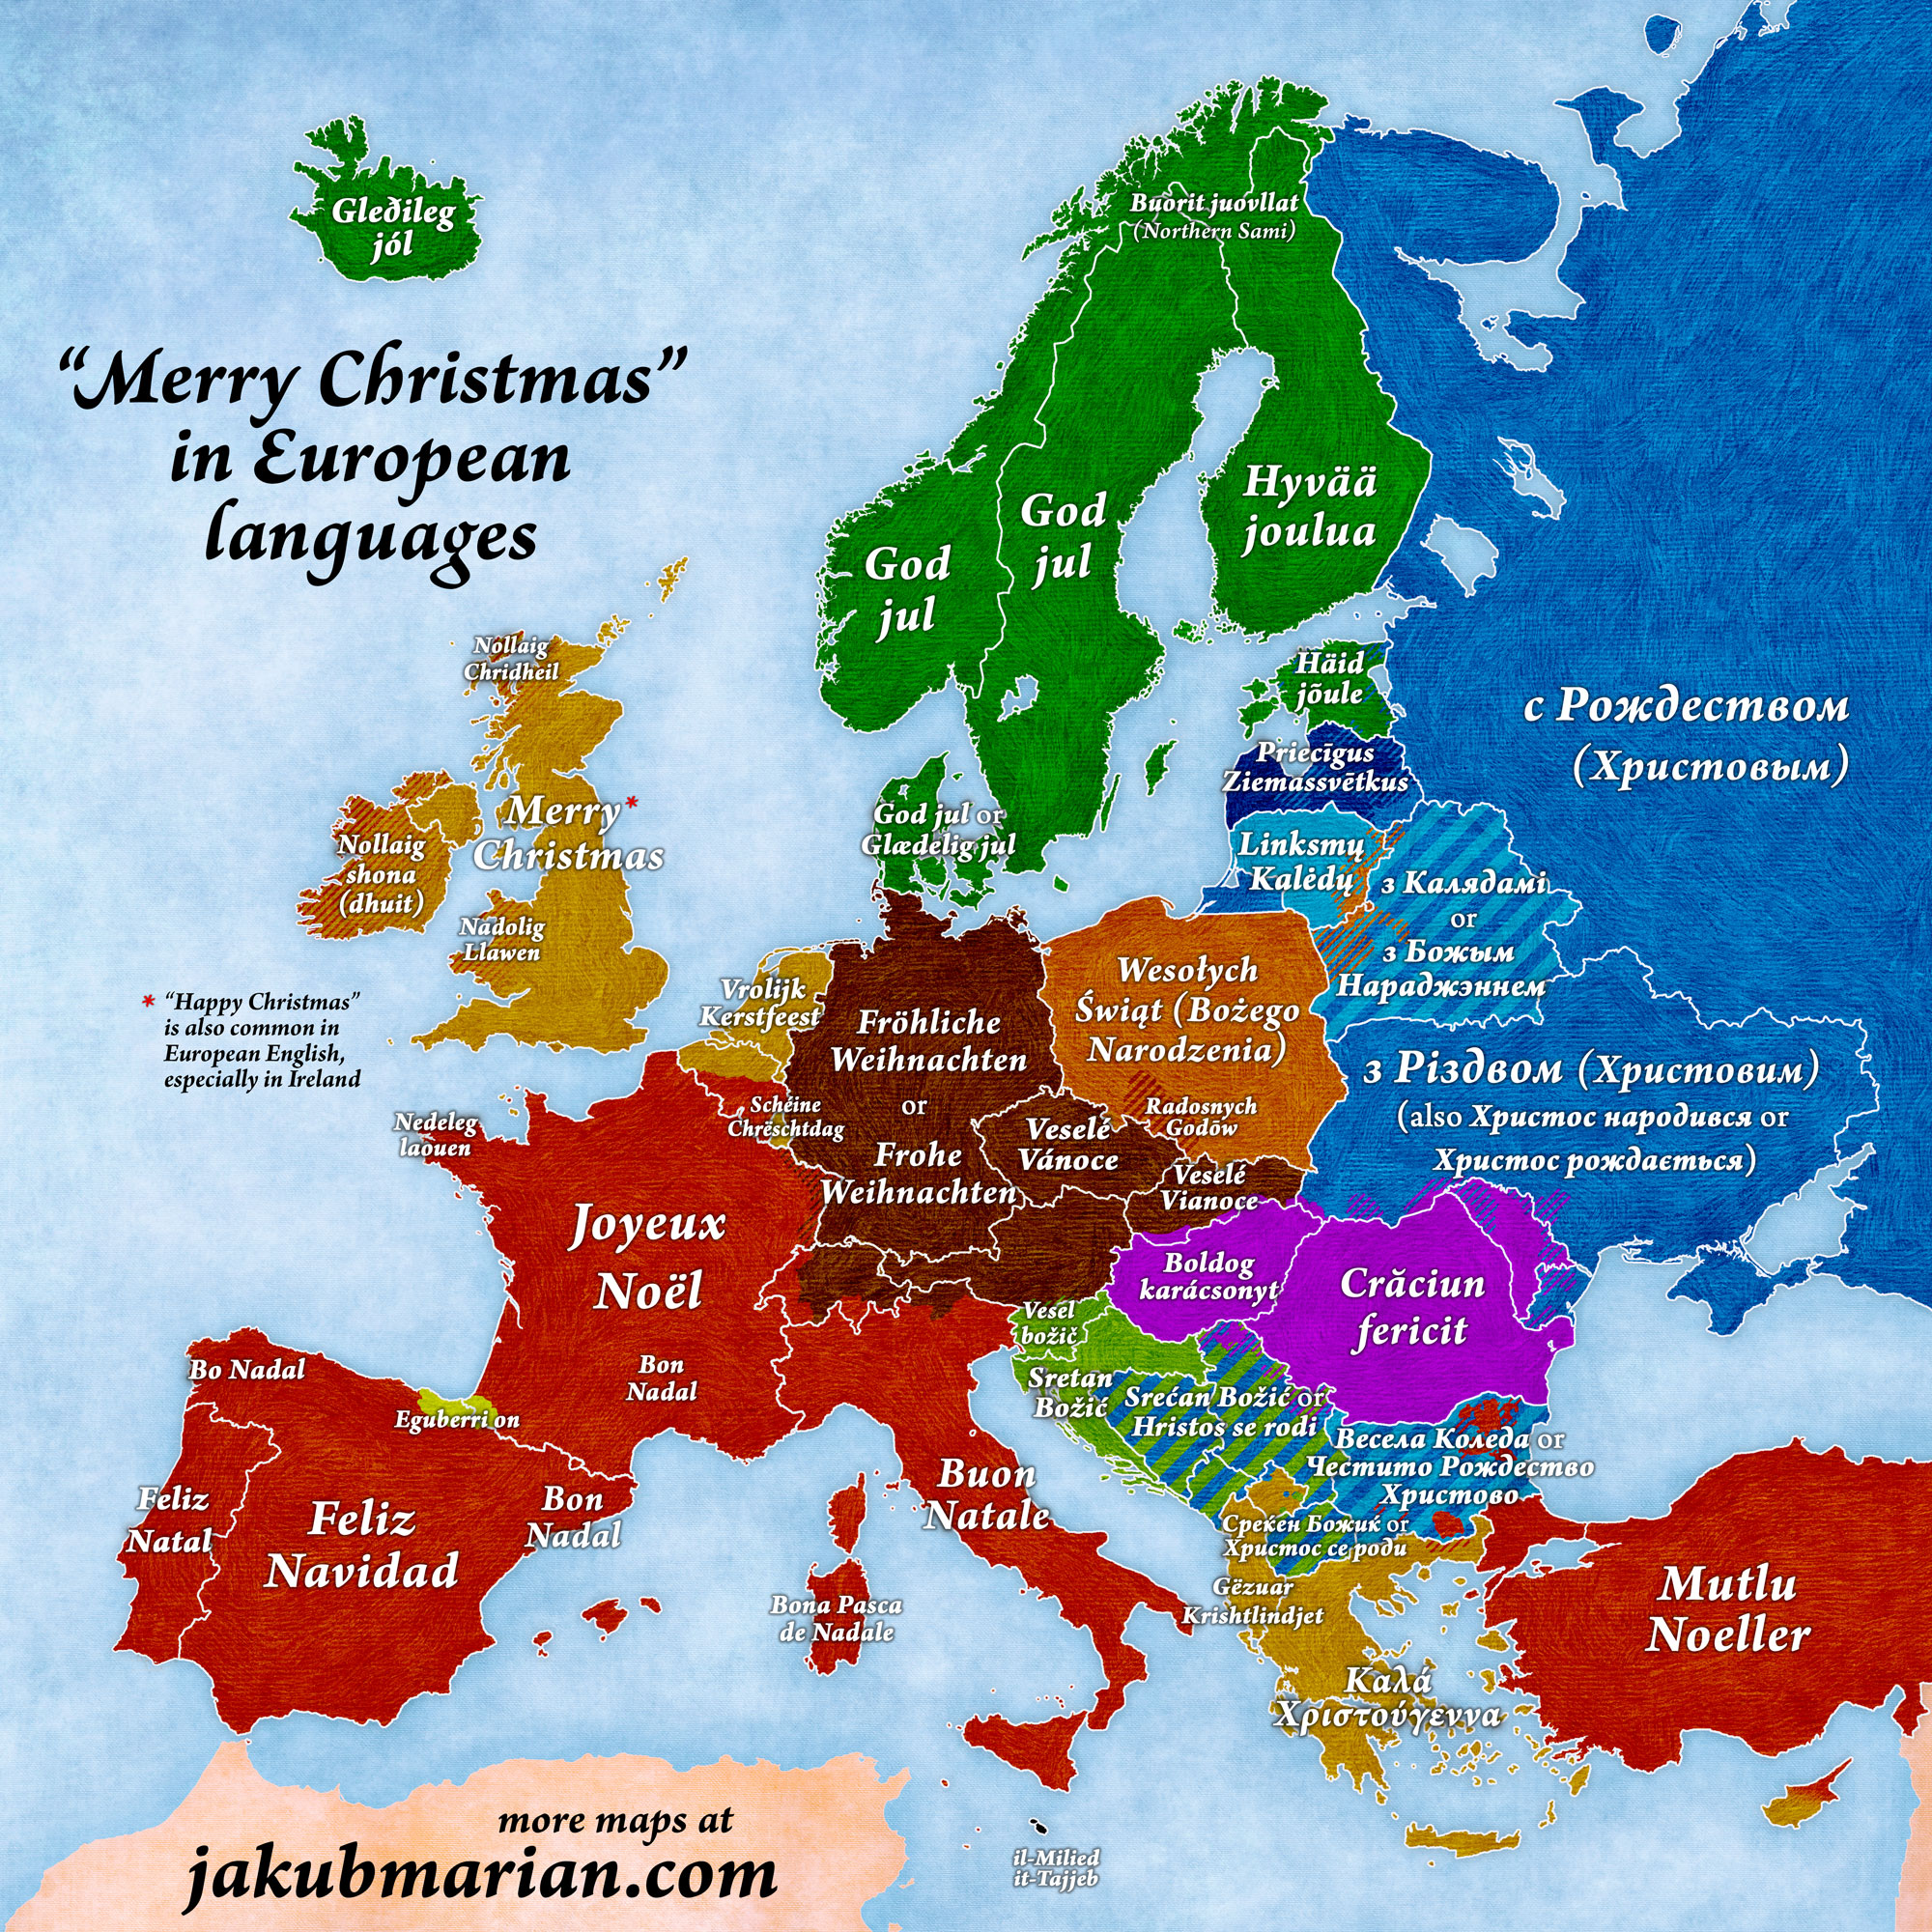 merry christmas in european languages map